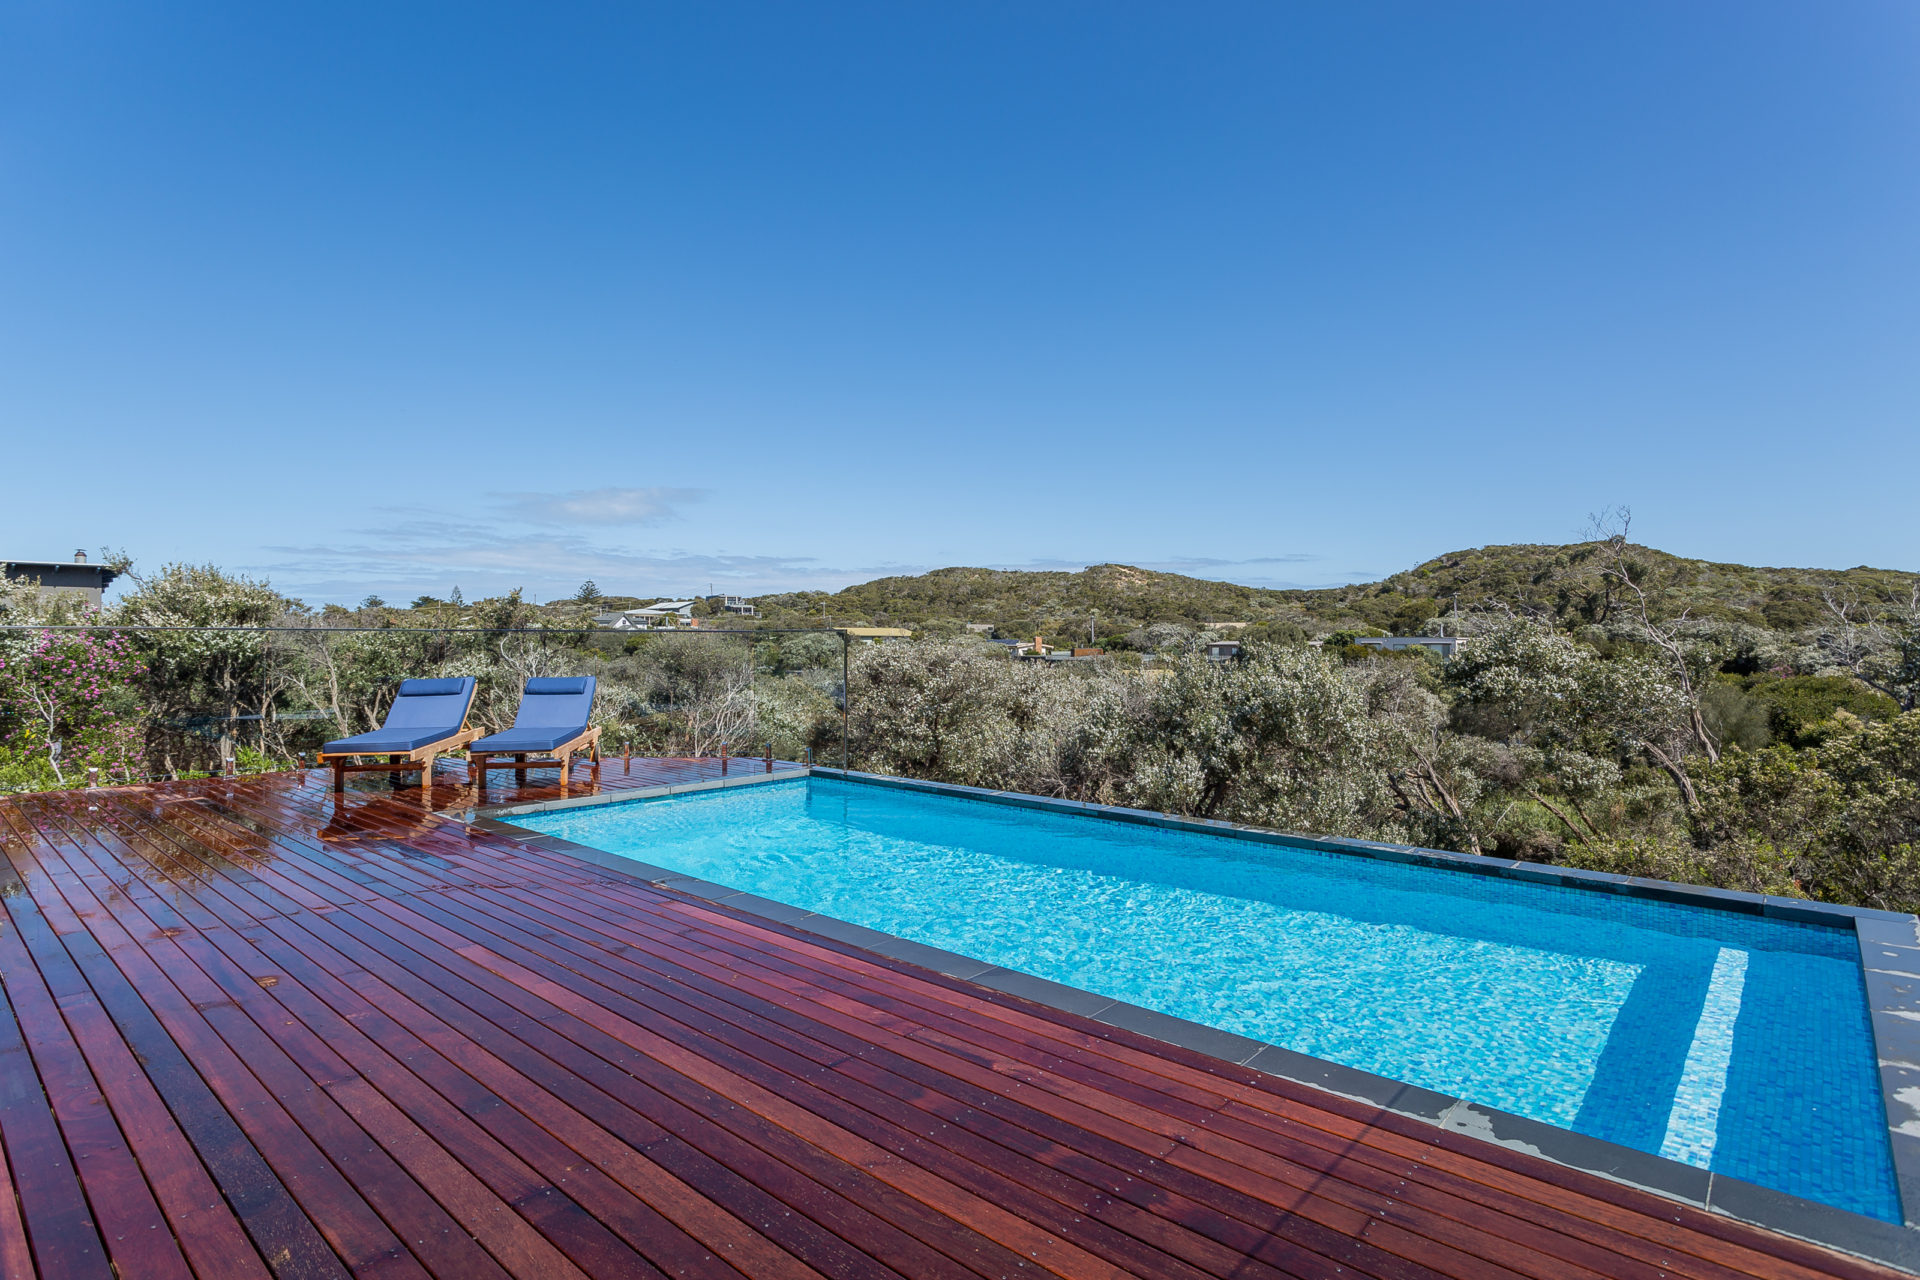 JOHN BERTRAM DRIVE SORRENTO (S405269346) BOOK NOW FOR SUMMER BEFORE YOU MISS OUT